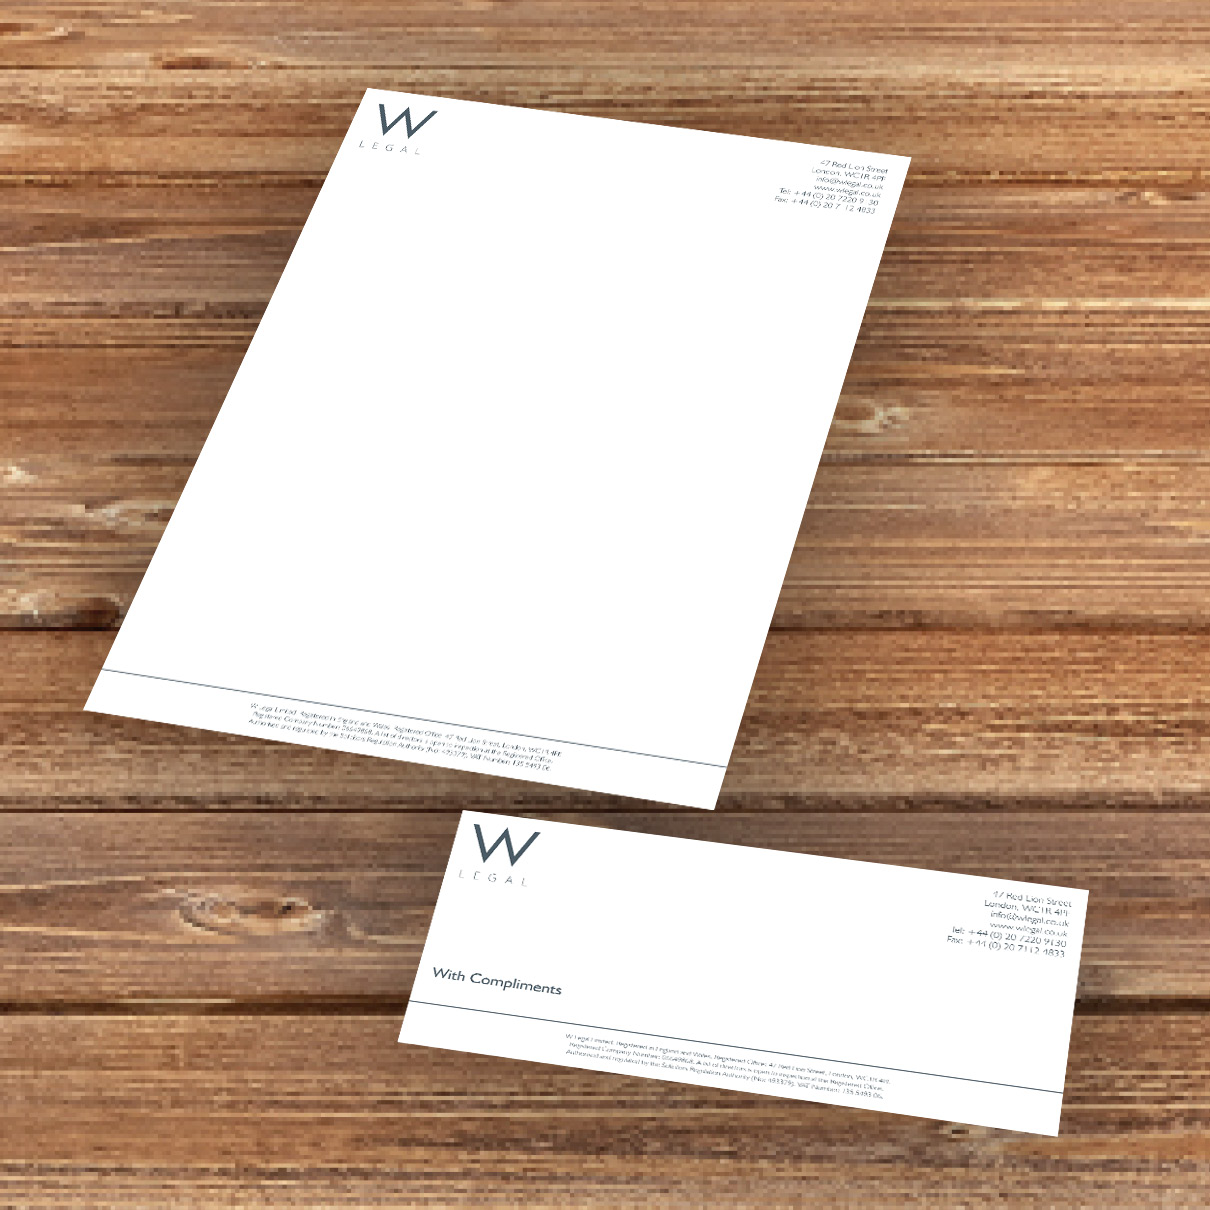 W Legal Letterhead CompSlip